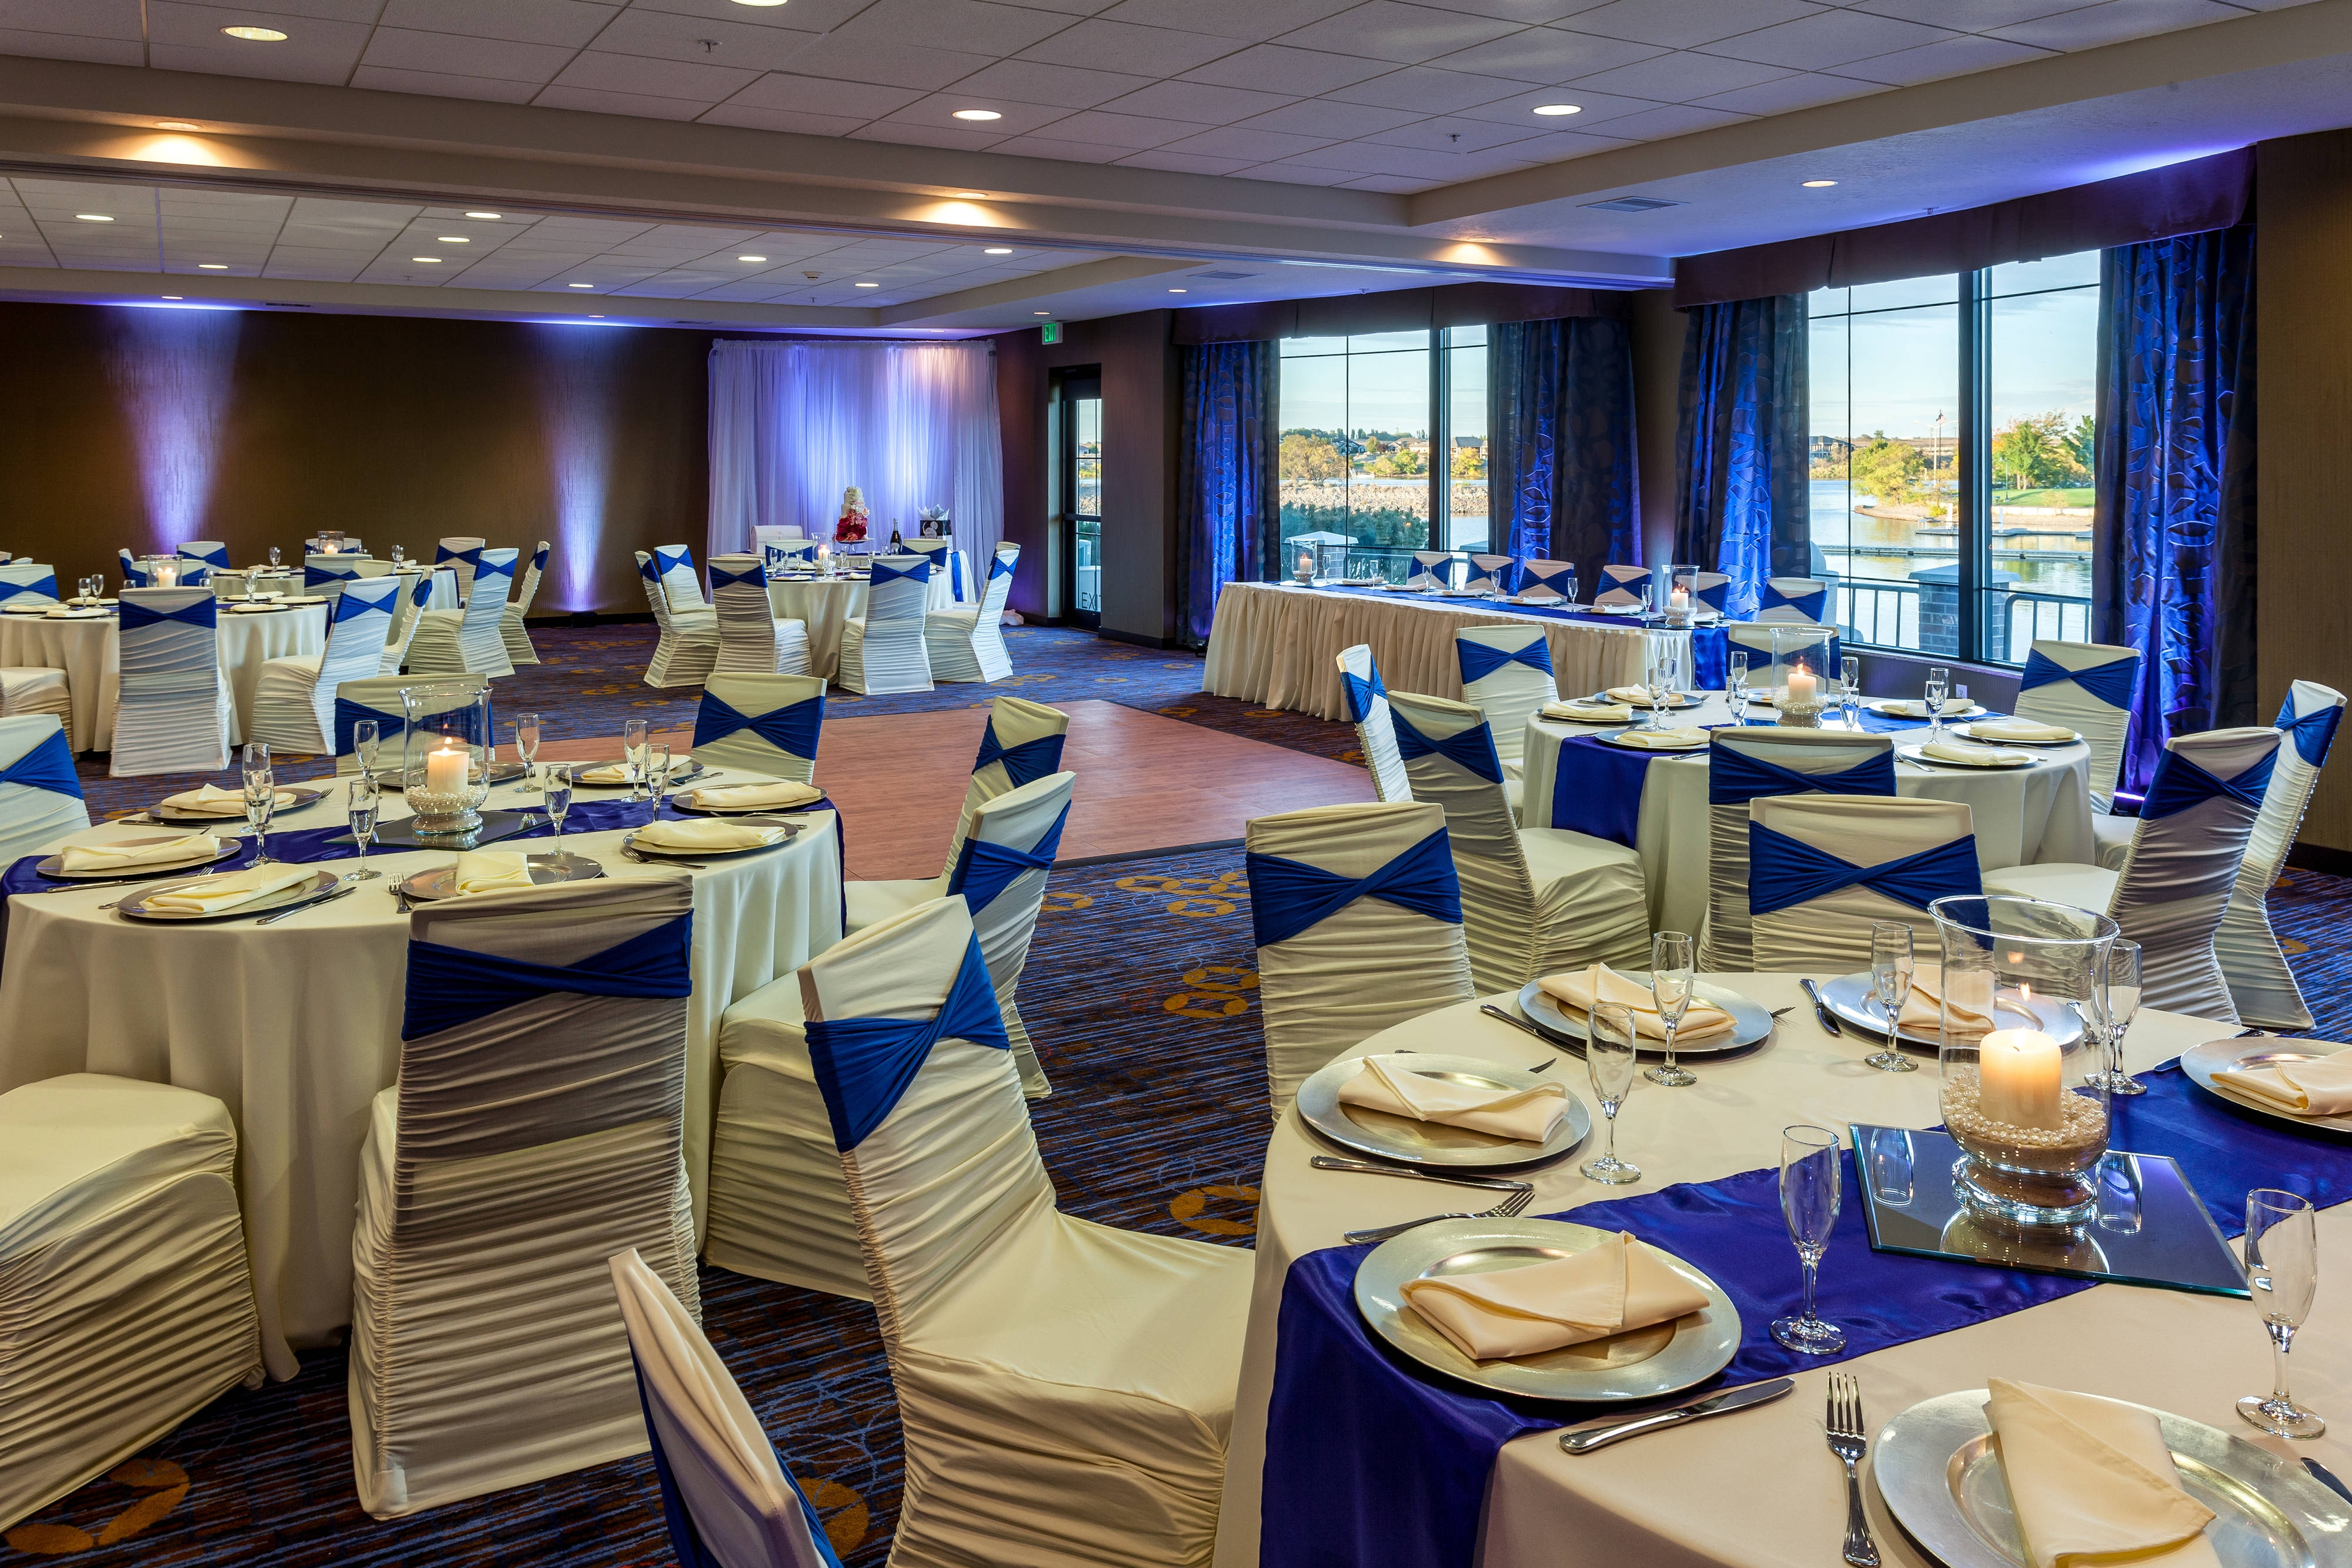 Weddings at Courtyard Richland